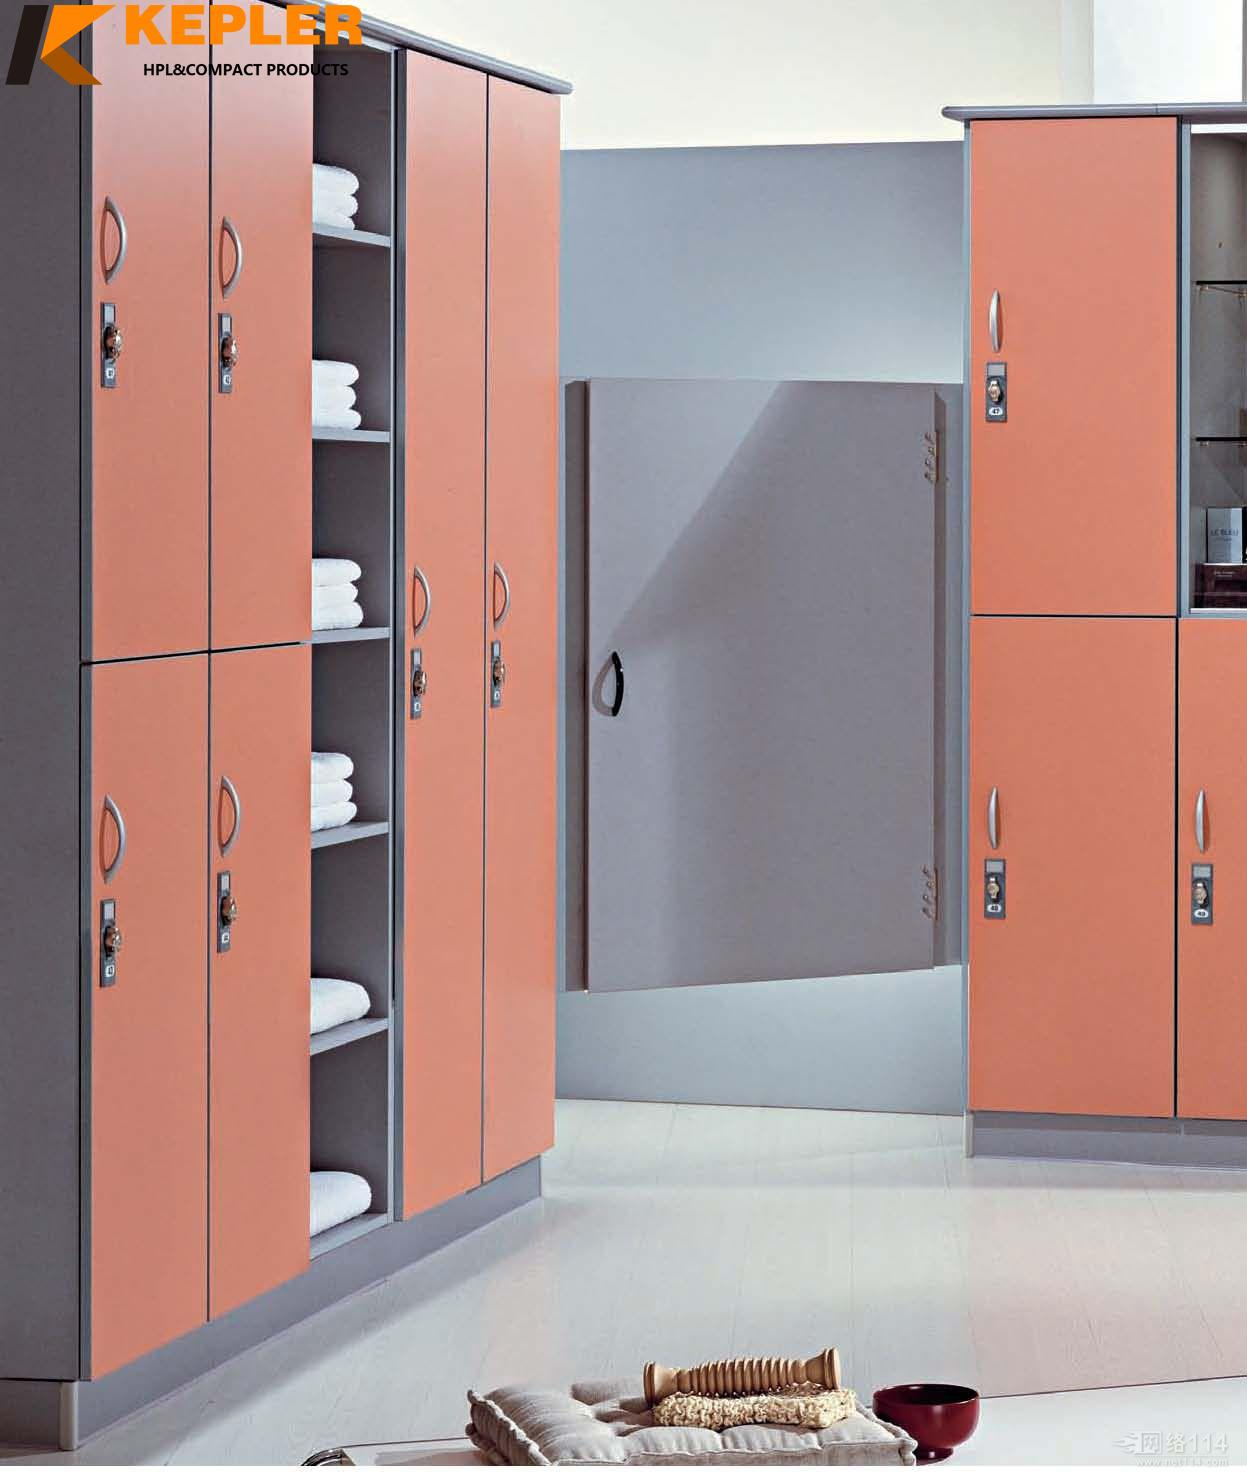 Kepler modern factory price compact laminate HPL waterproof staff locker cabinet for changing room